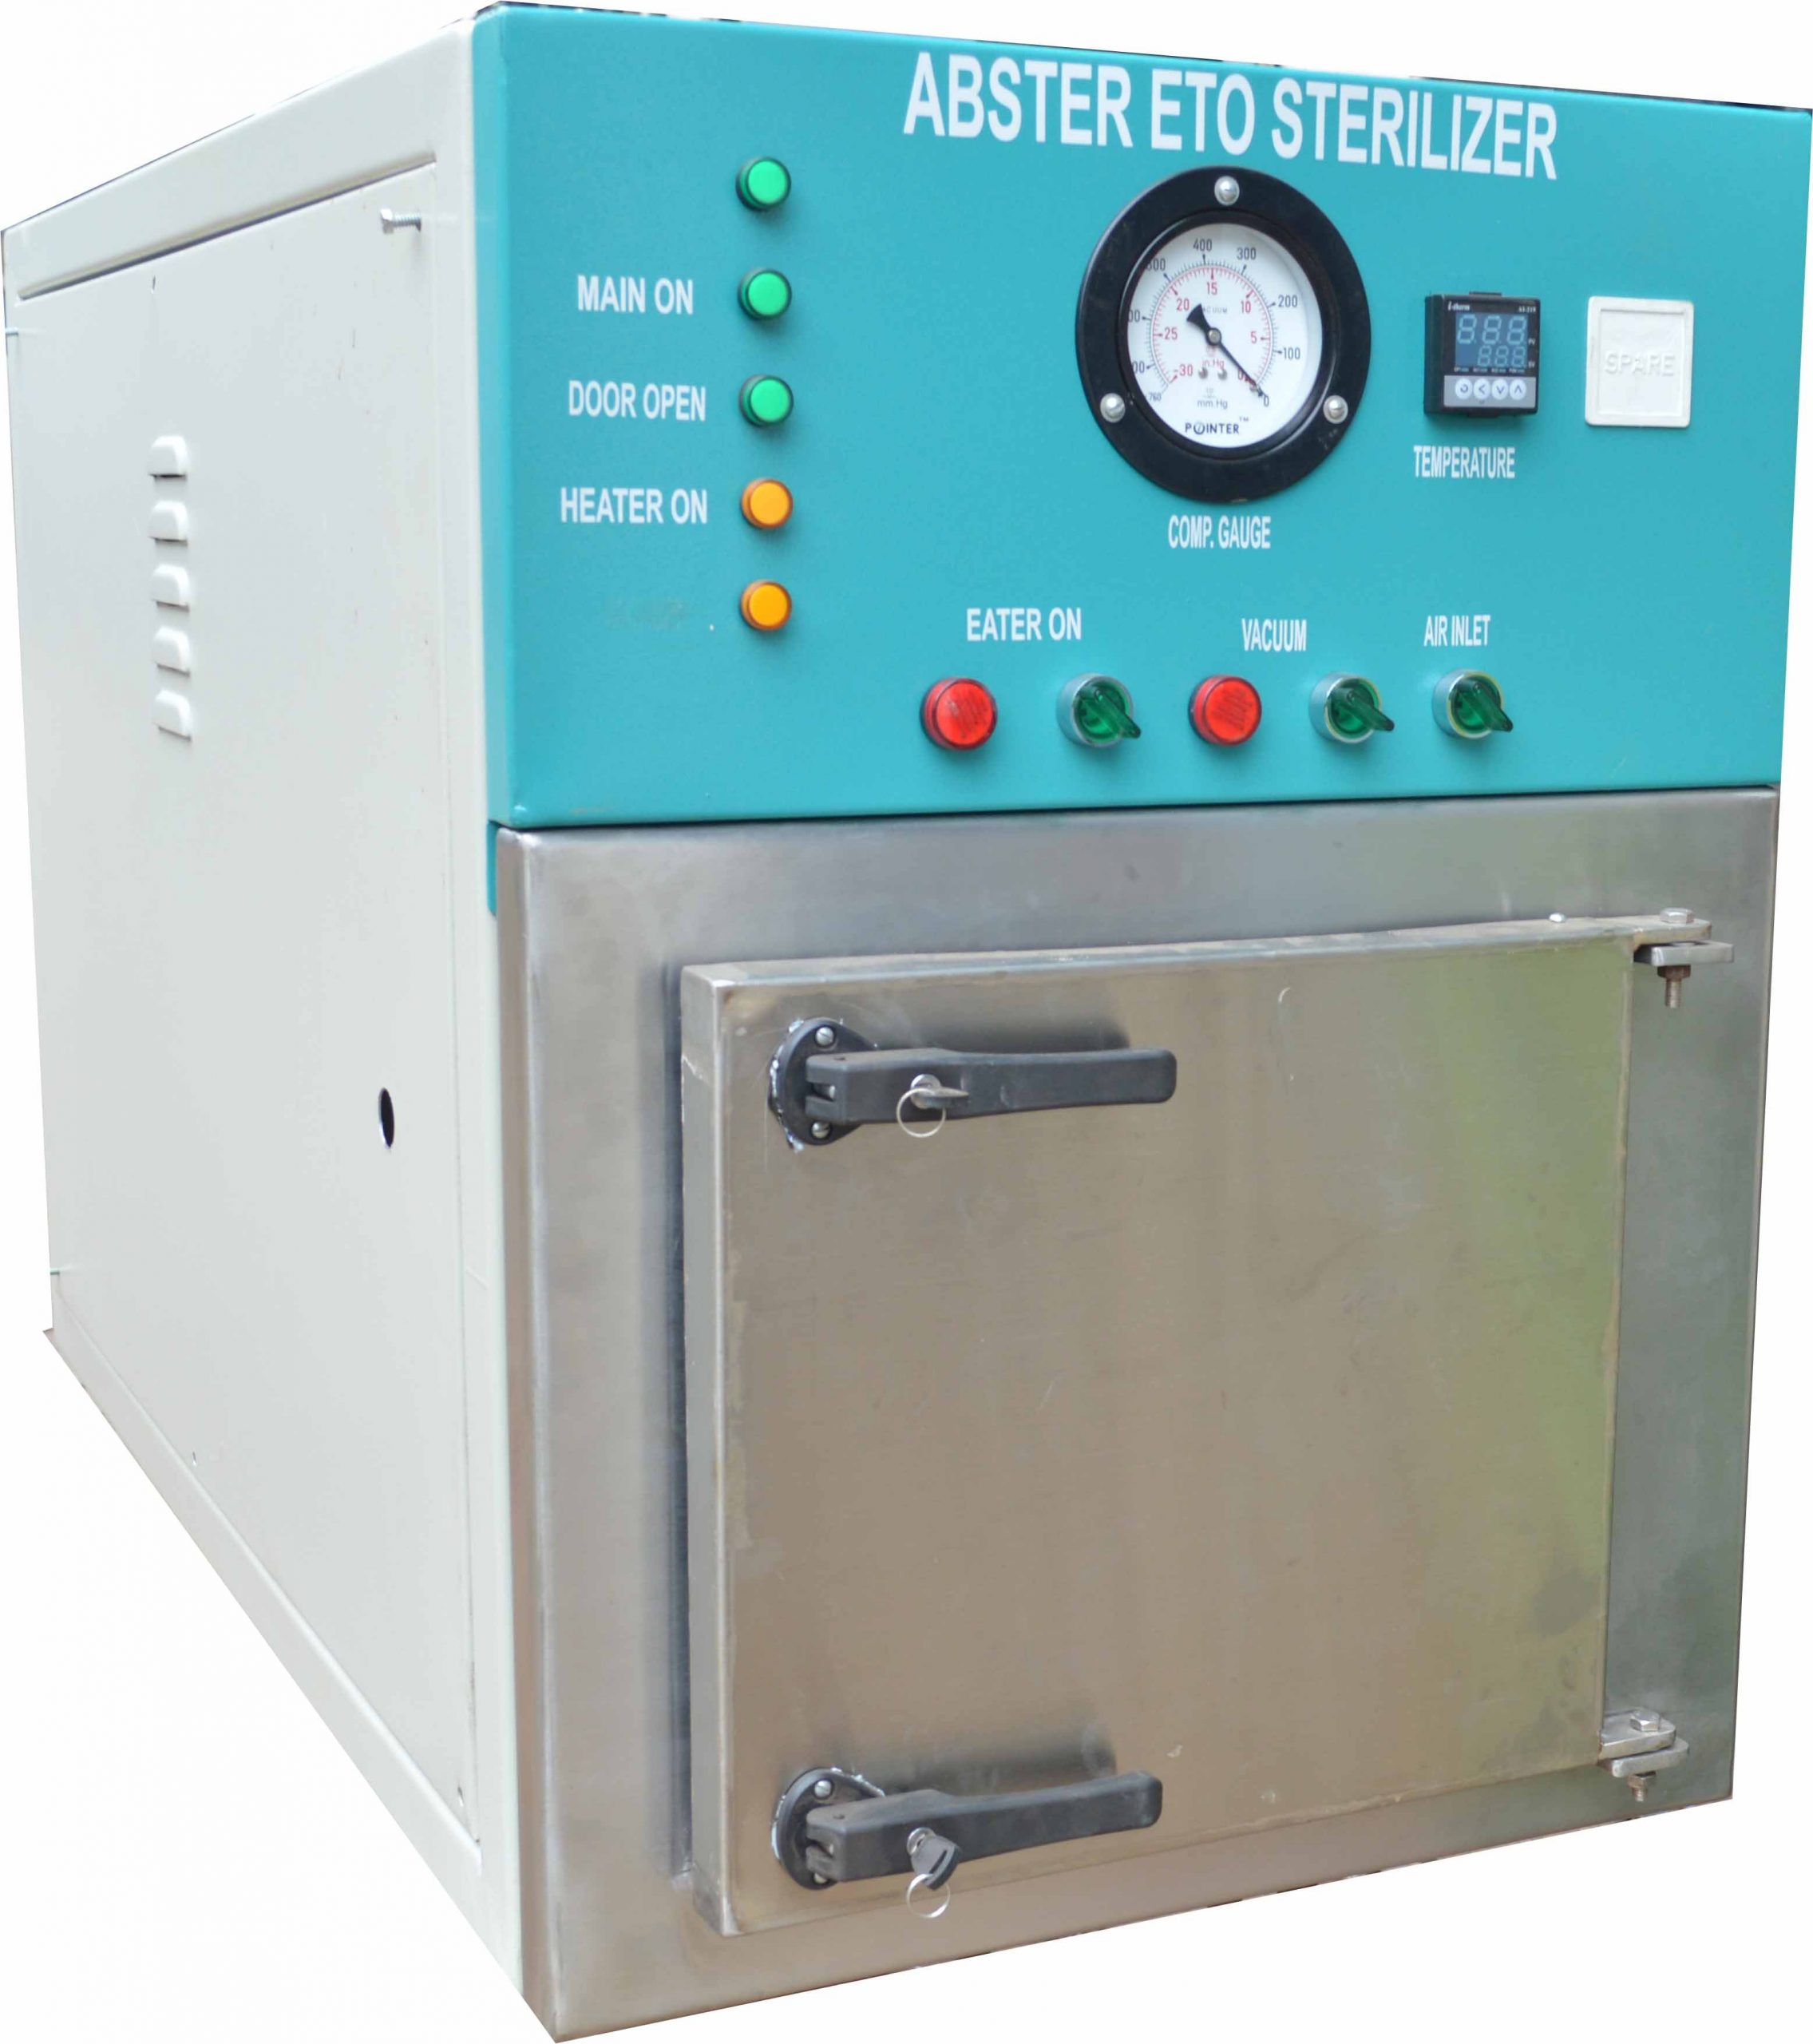 eto-sterilizer-machine